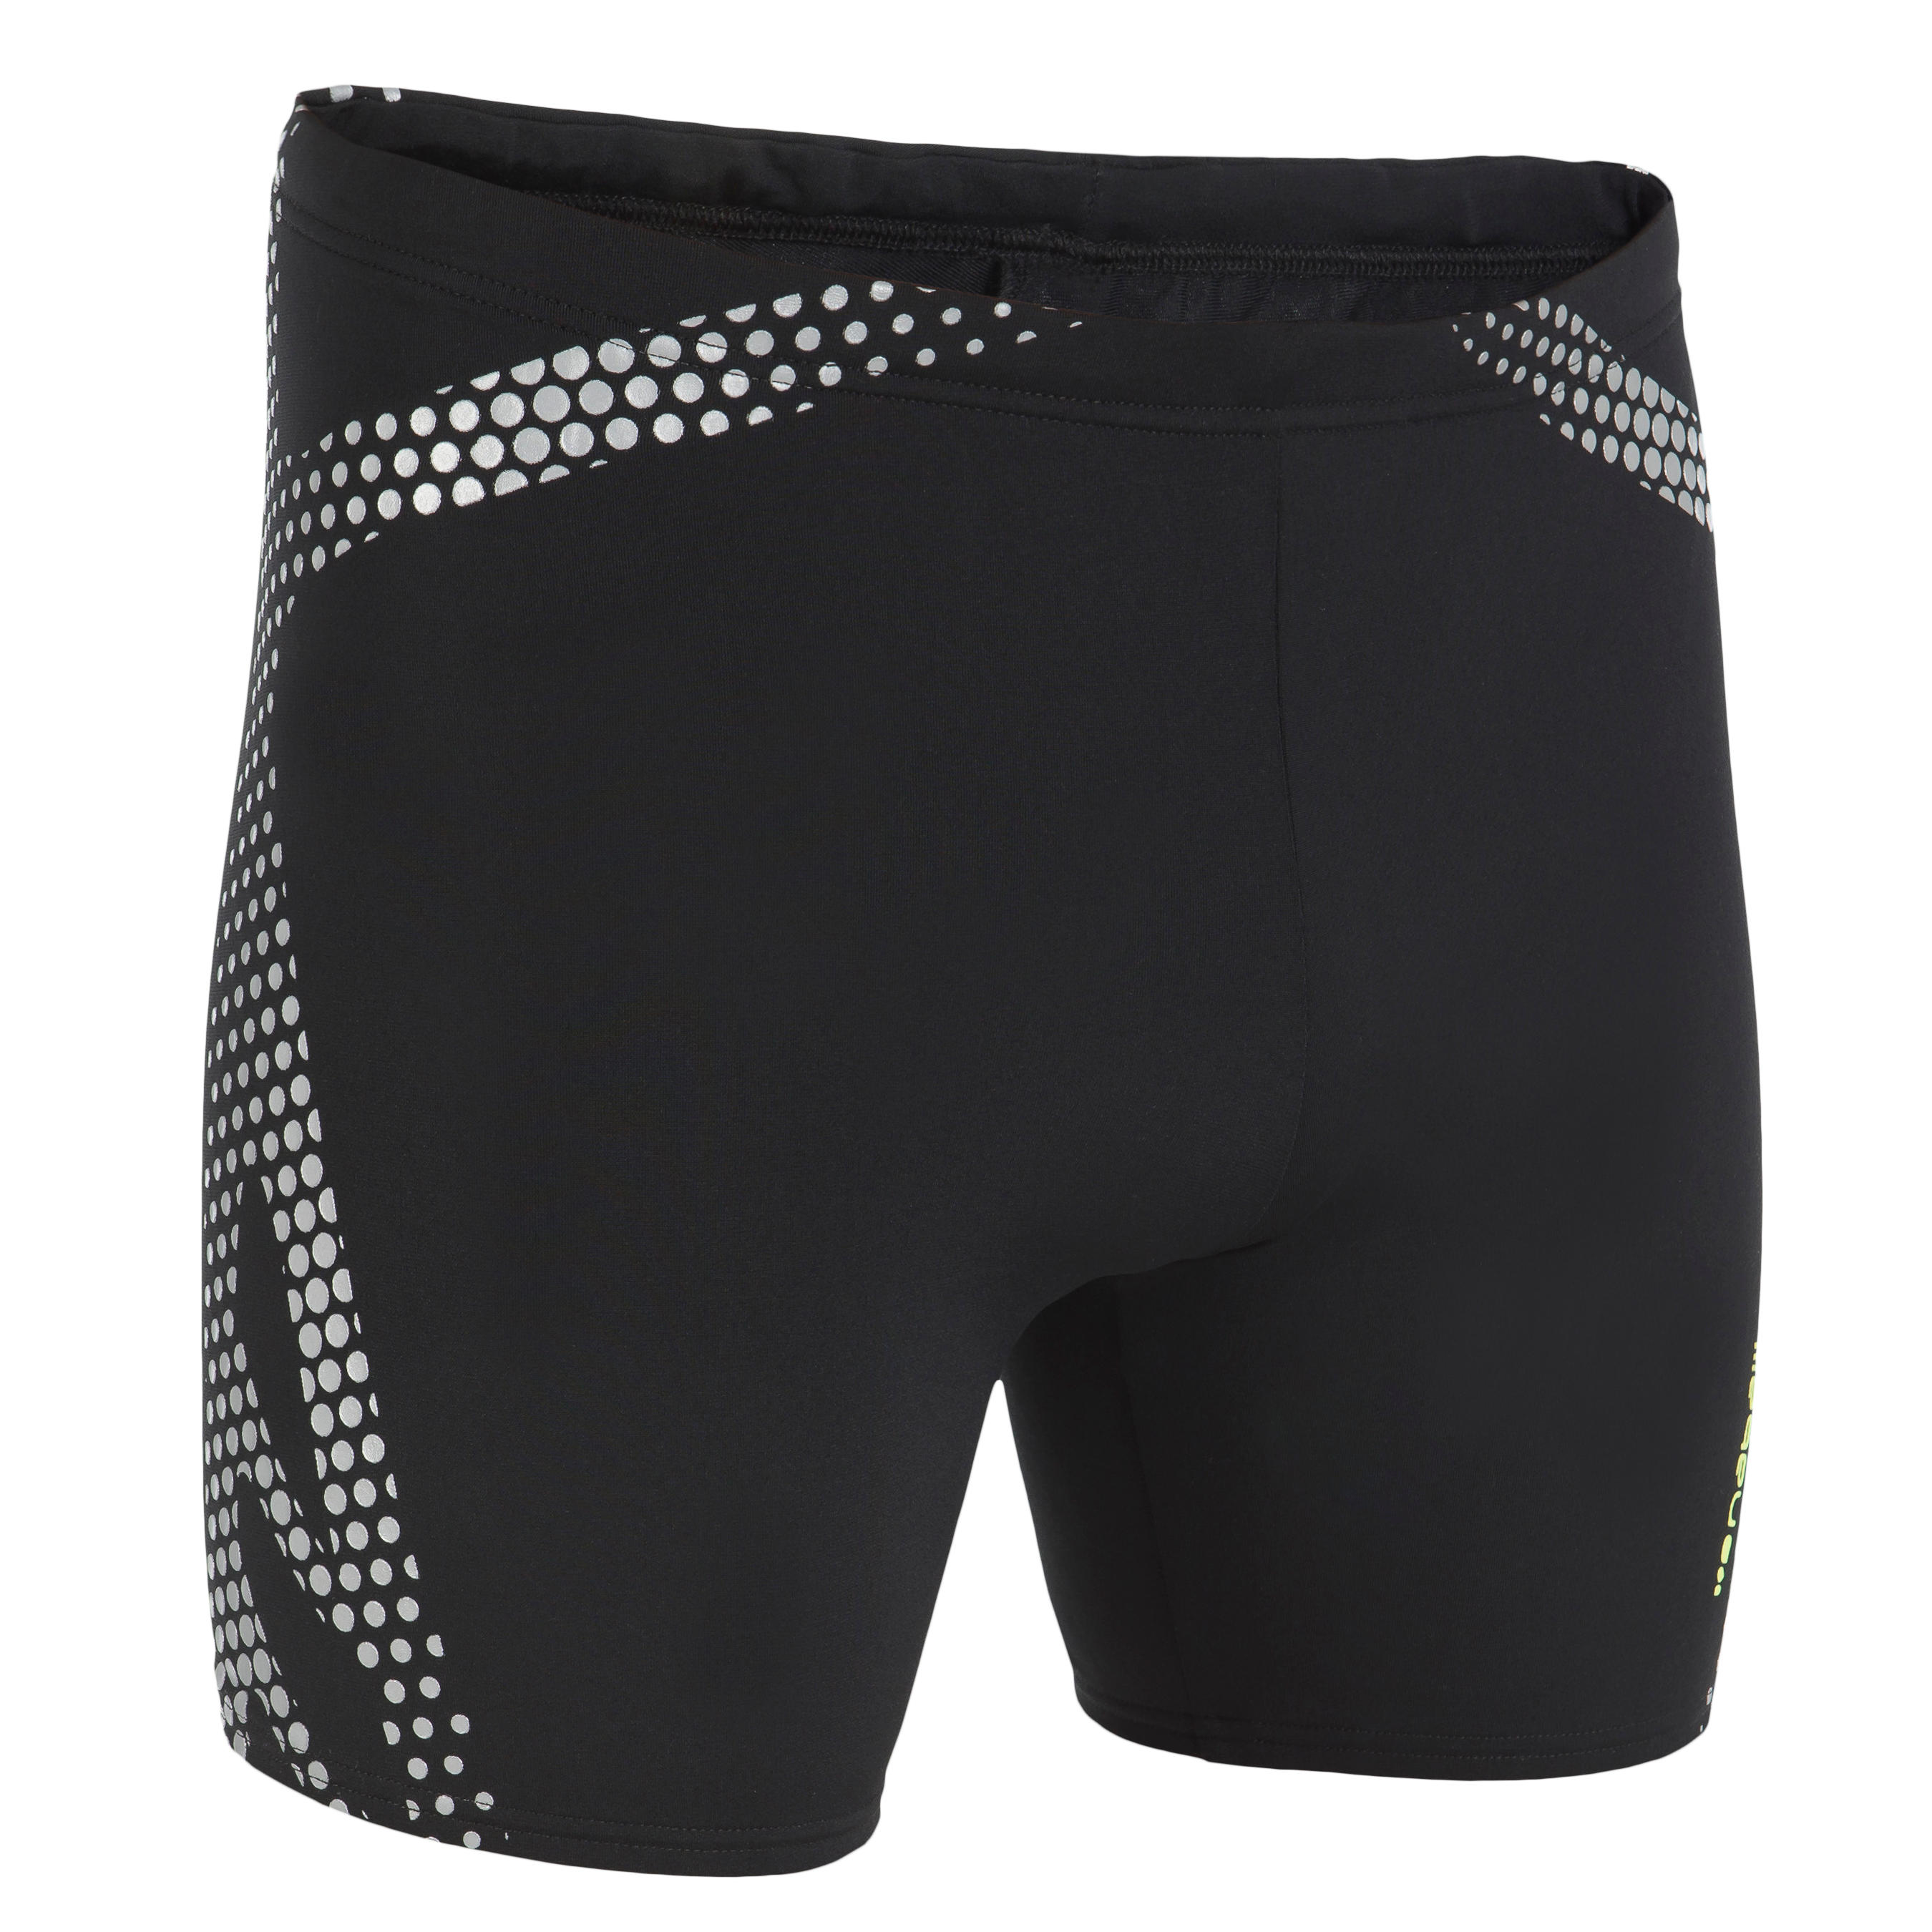 500 MEN'S LONG BOXER SWIMMING SHORTS BLACK SILVER